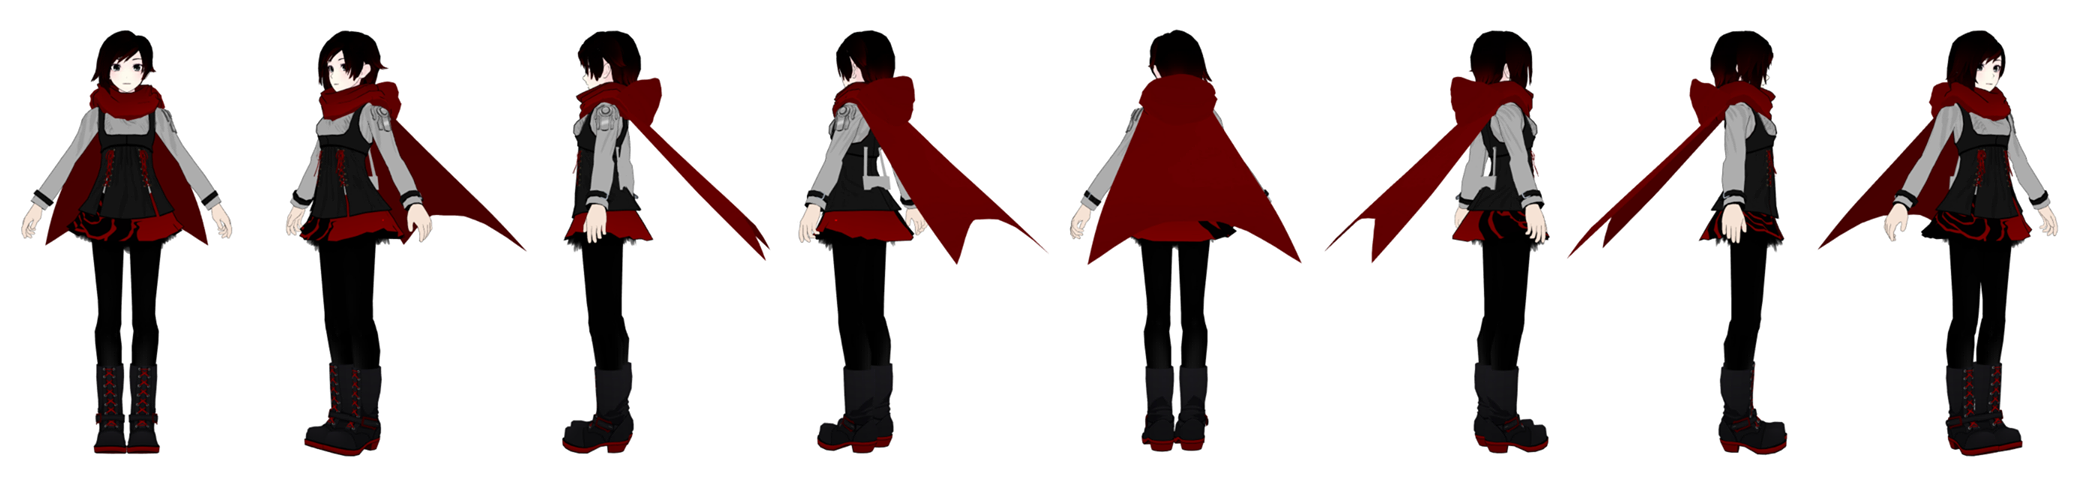 https://www.fightersgeneration.com/nf2/char/rwby/ruby-rose-rwby-3d-reference.png